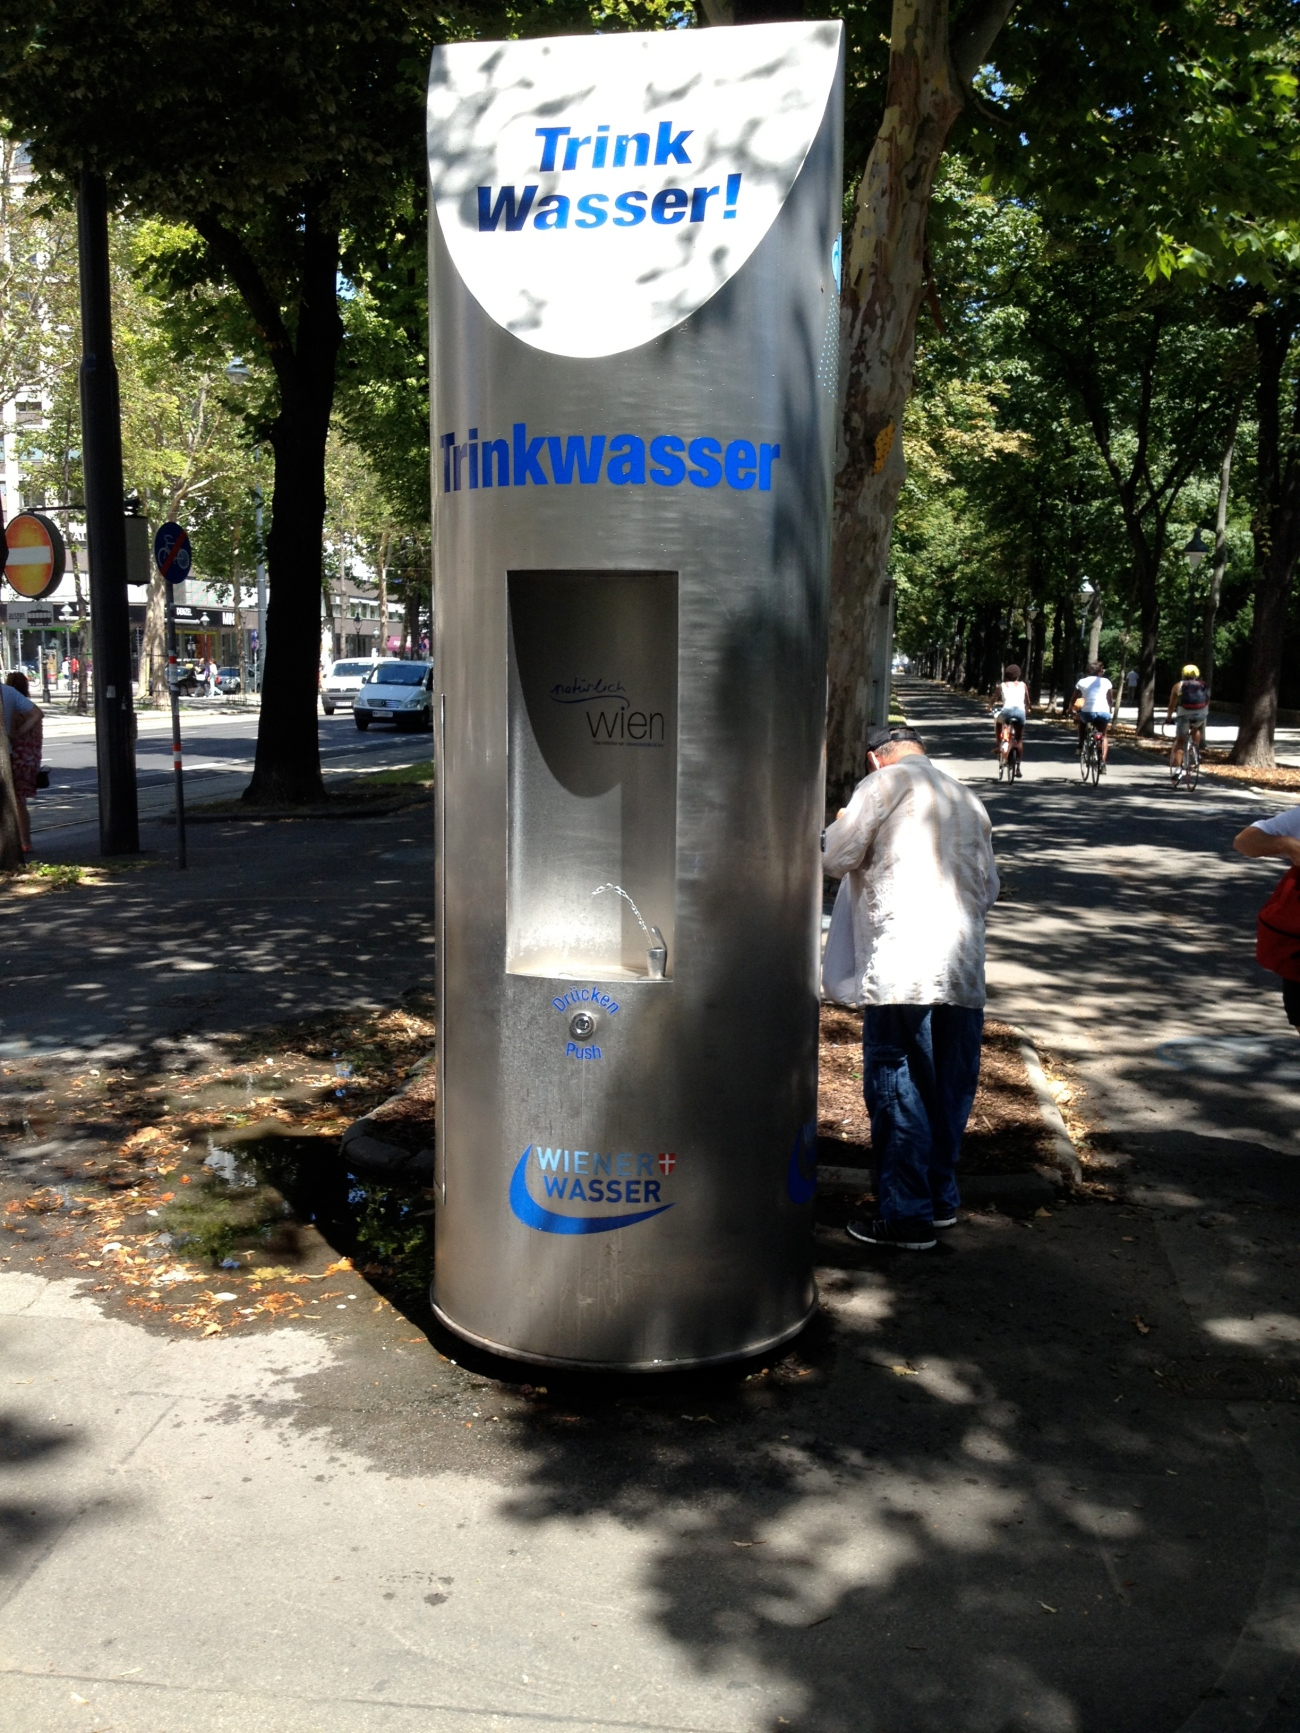 These water stations are sprinkled throughout the city to give access to Vienna's 5th best water in the world.